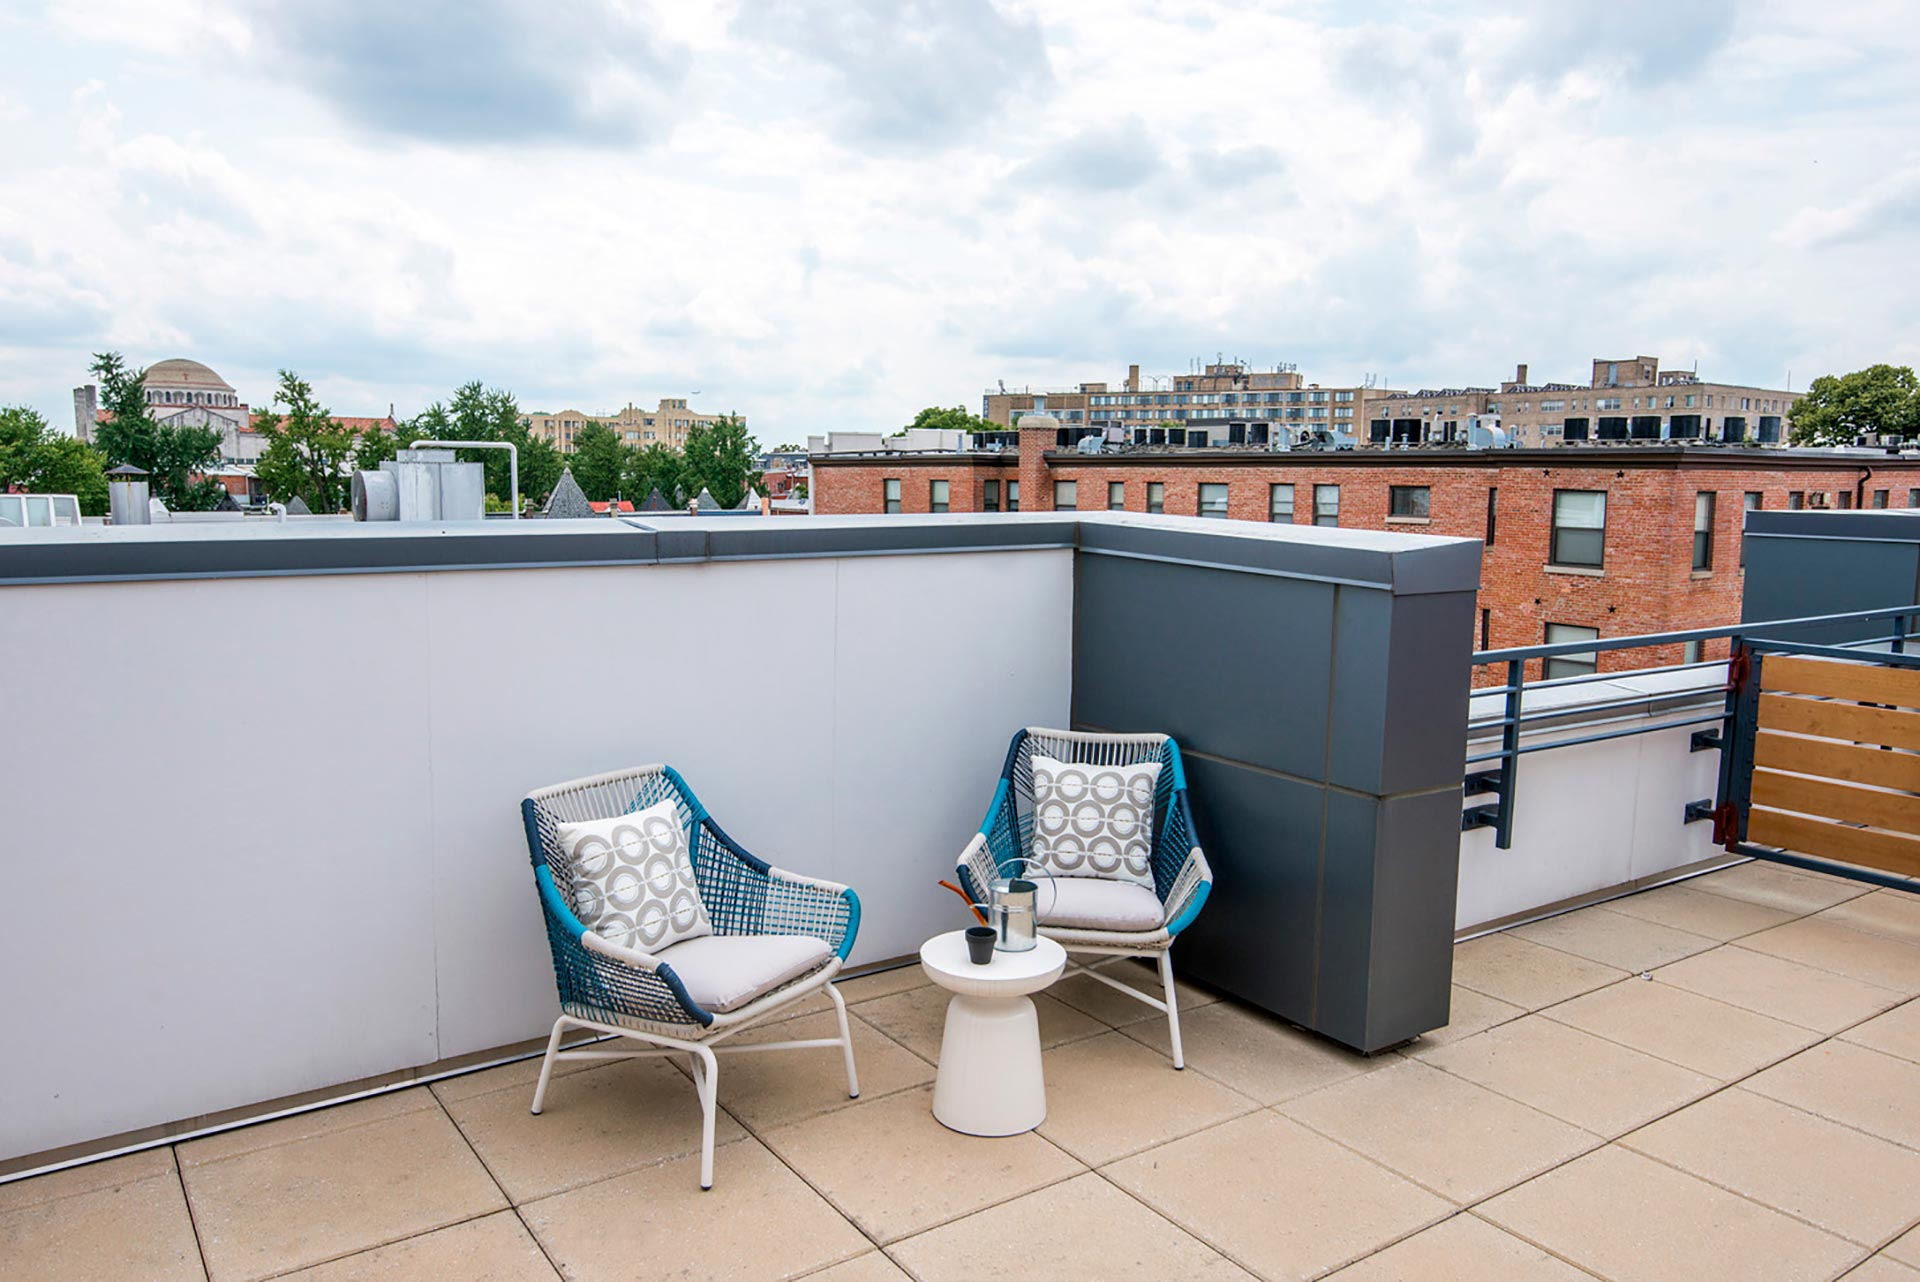 Closeup shot of outdoor furniture on private roof terrace with view of rooftops and trees beyond